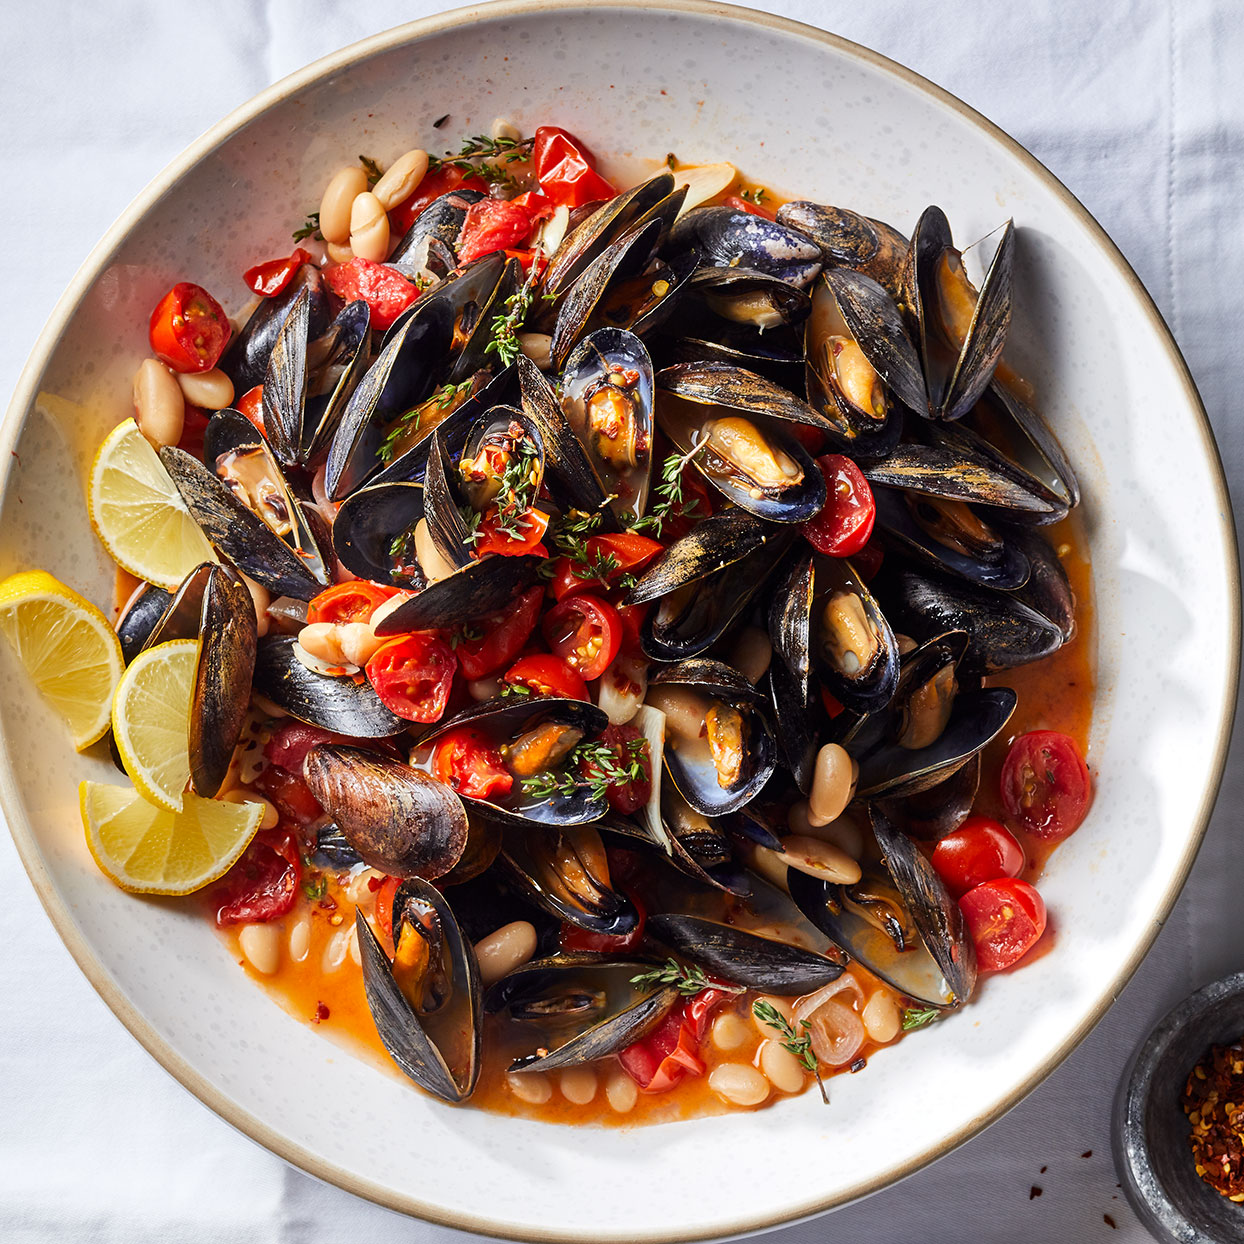 Cooking mussels may seem intimidating, but here we've made it quick and easy. We've added white beans to turn this classic mussels-in-white-wine-sauce dish into a heartier weeknight meal. Serve with whole-grain crusty bread to sop up the flavorful broth. Source: EatingWell Magazine, December 2019